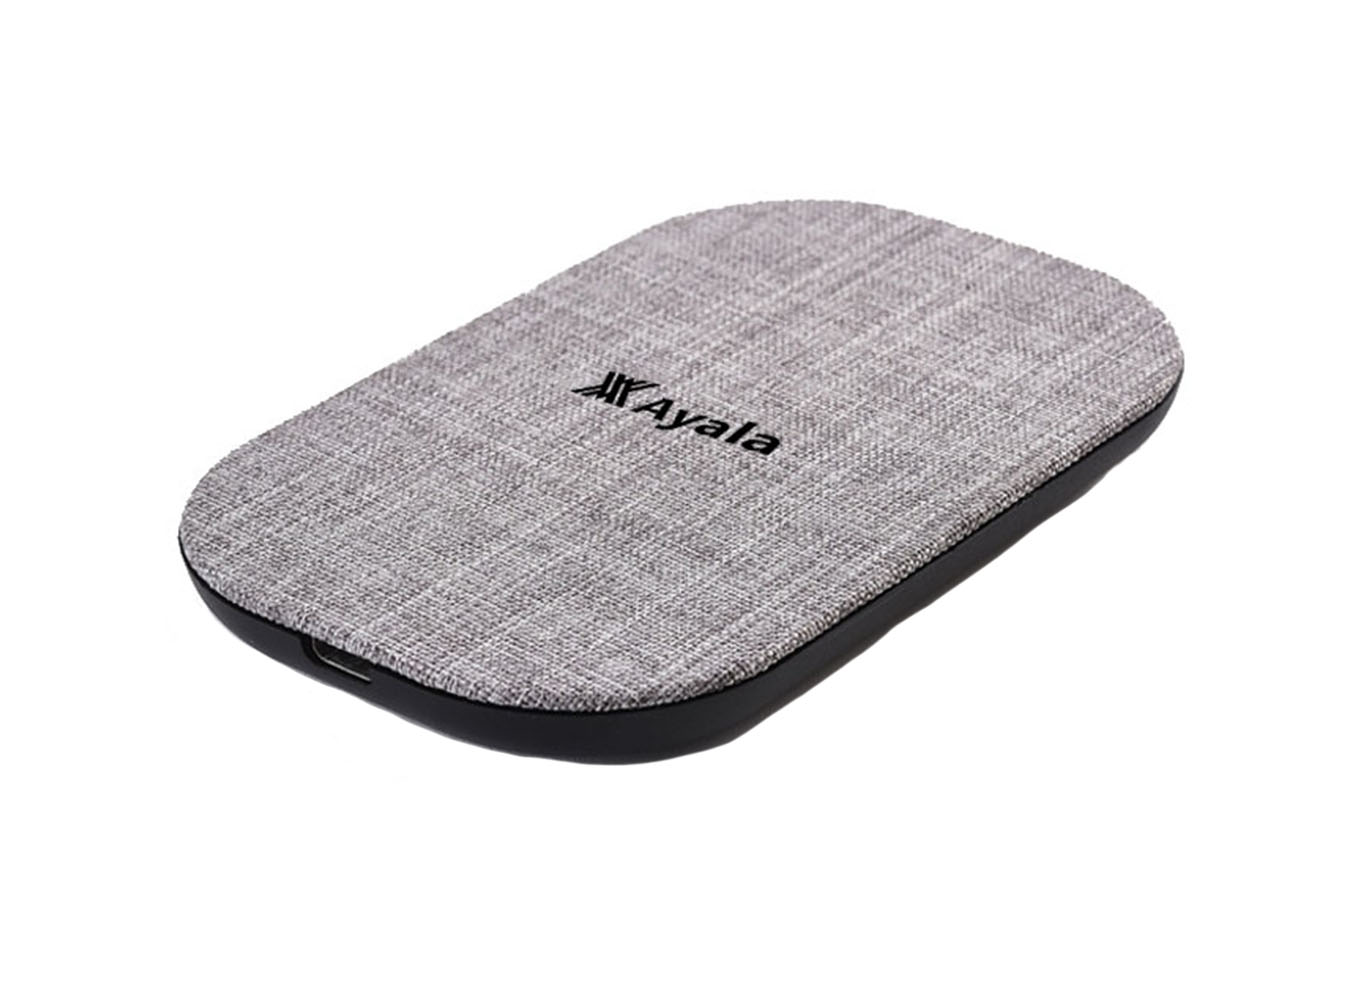 RPET Tech Wireless Charger Pad